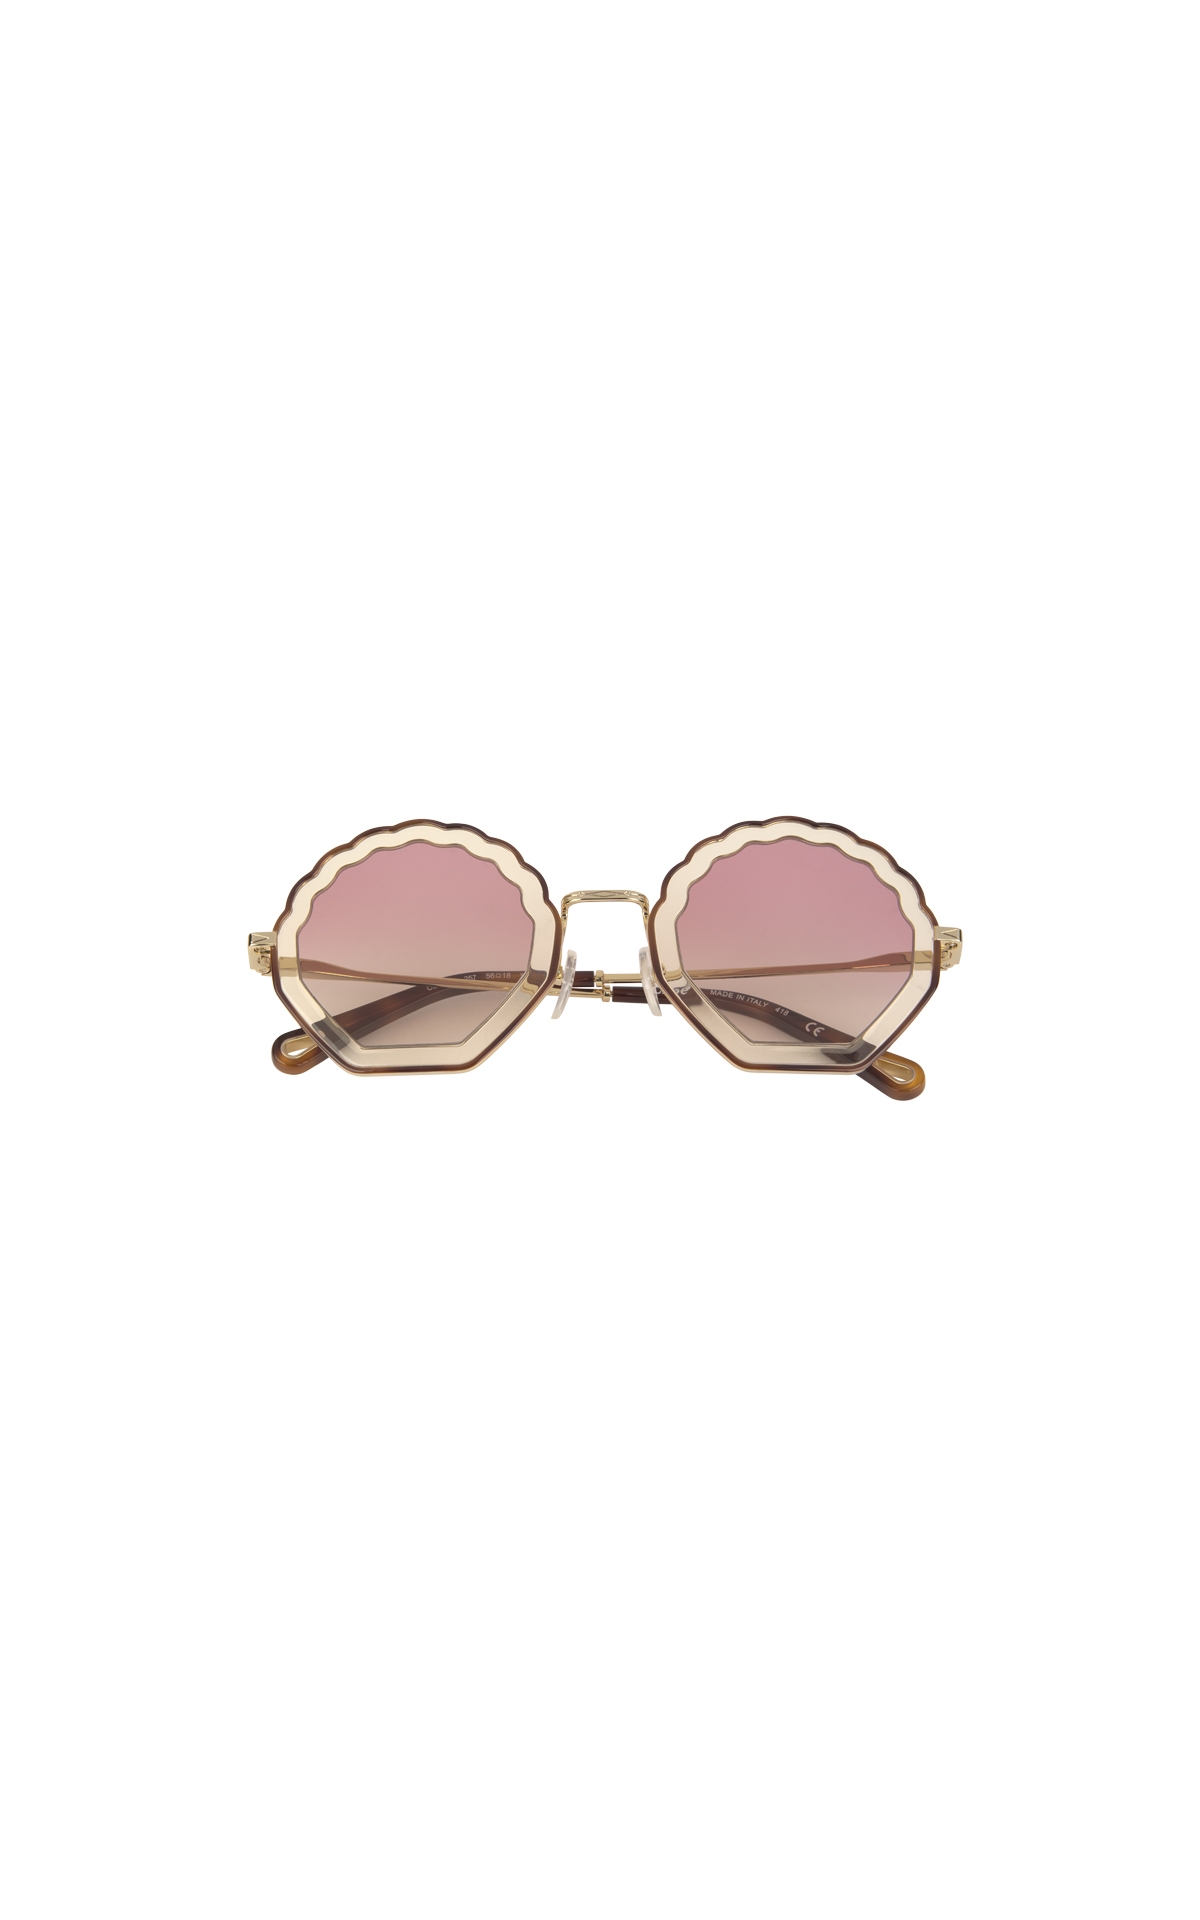 Pink Chloé rounded sunglasses for woman Cottet